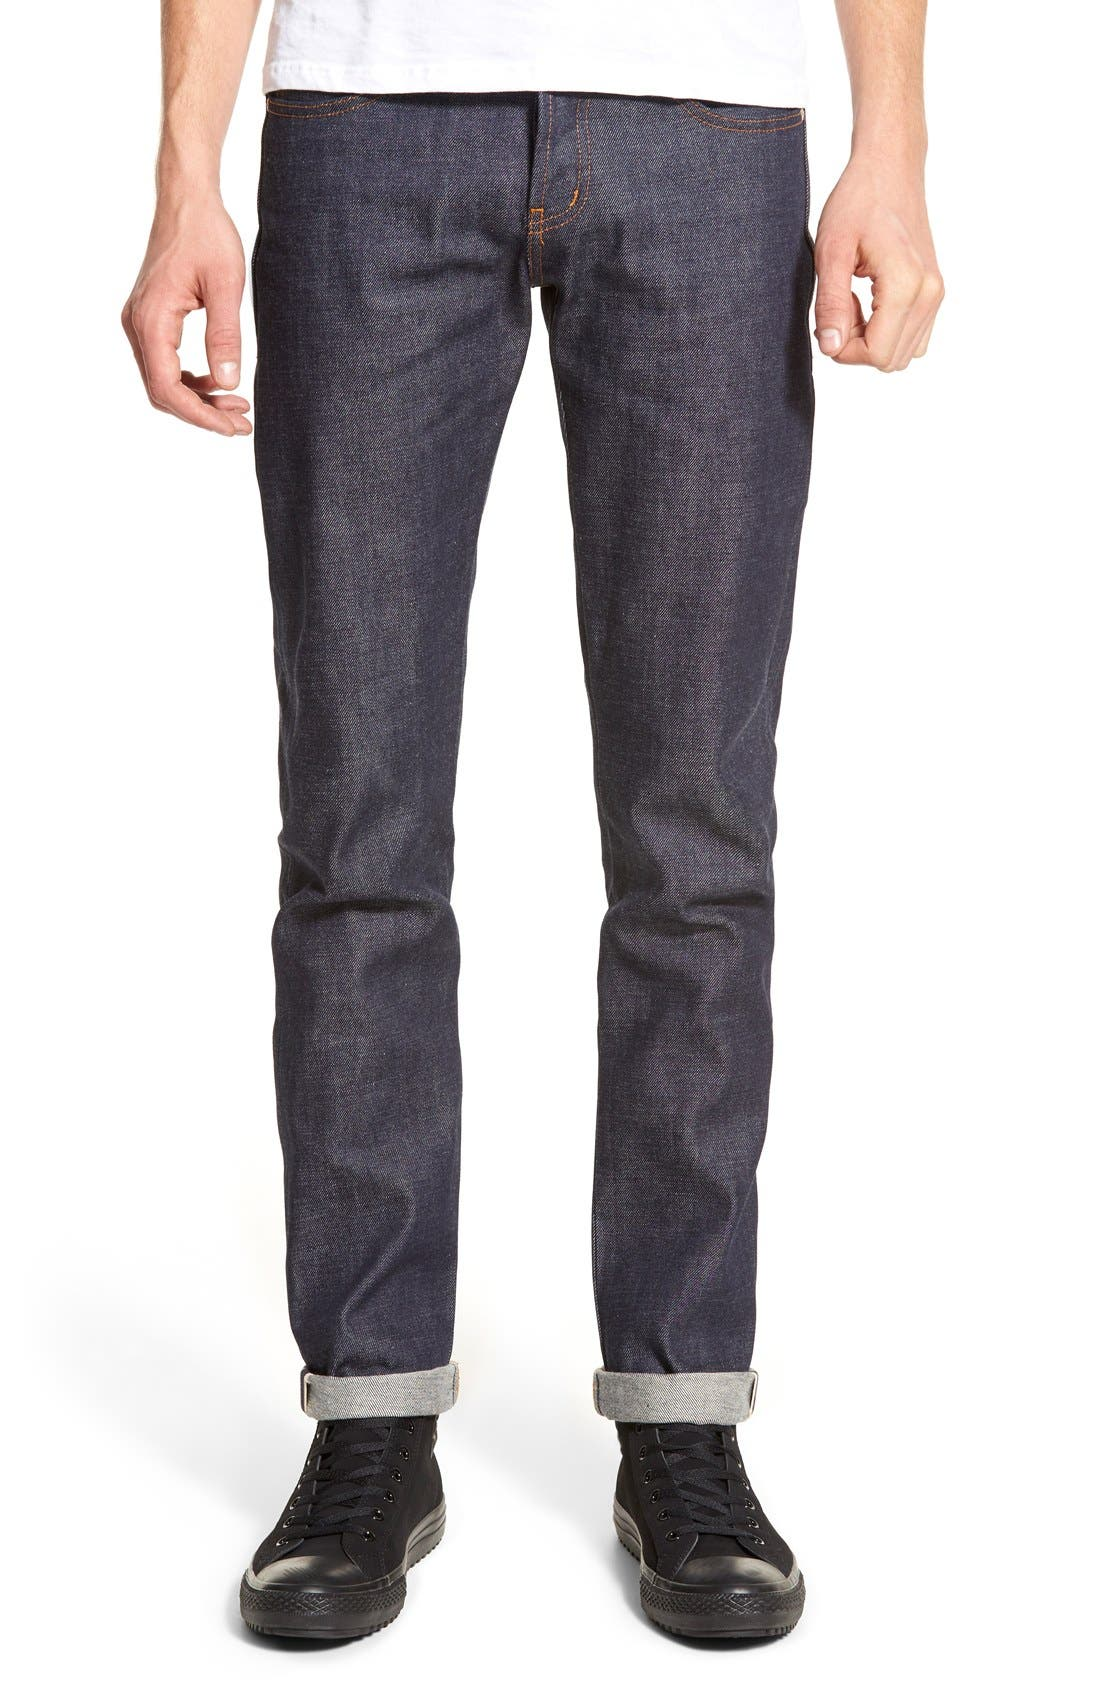 NAKED AND FAMOUS SUPER SKINNY GUY SKINNY FIT SELVEDGE JEANS